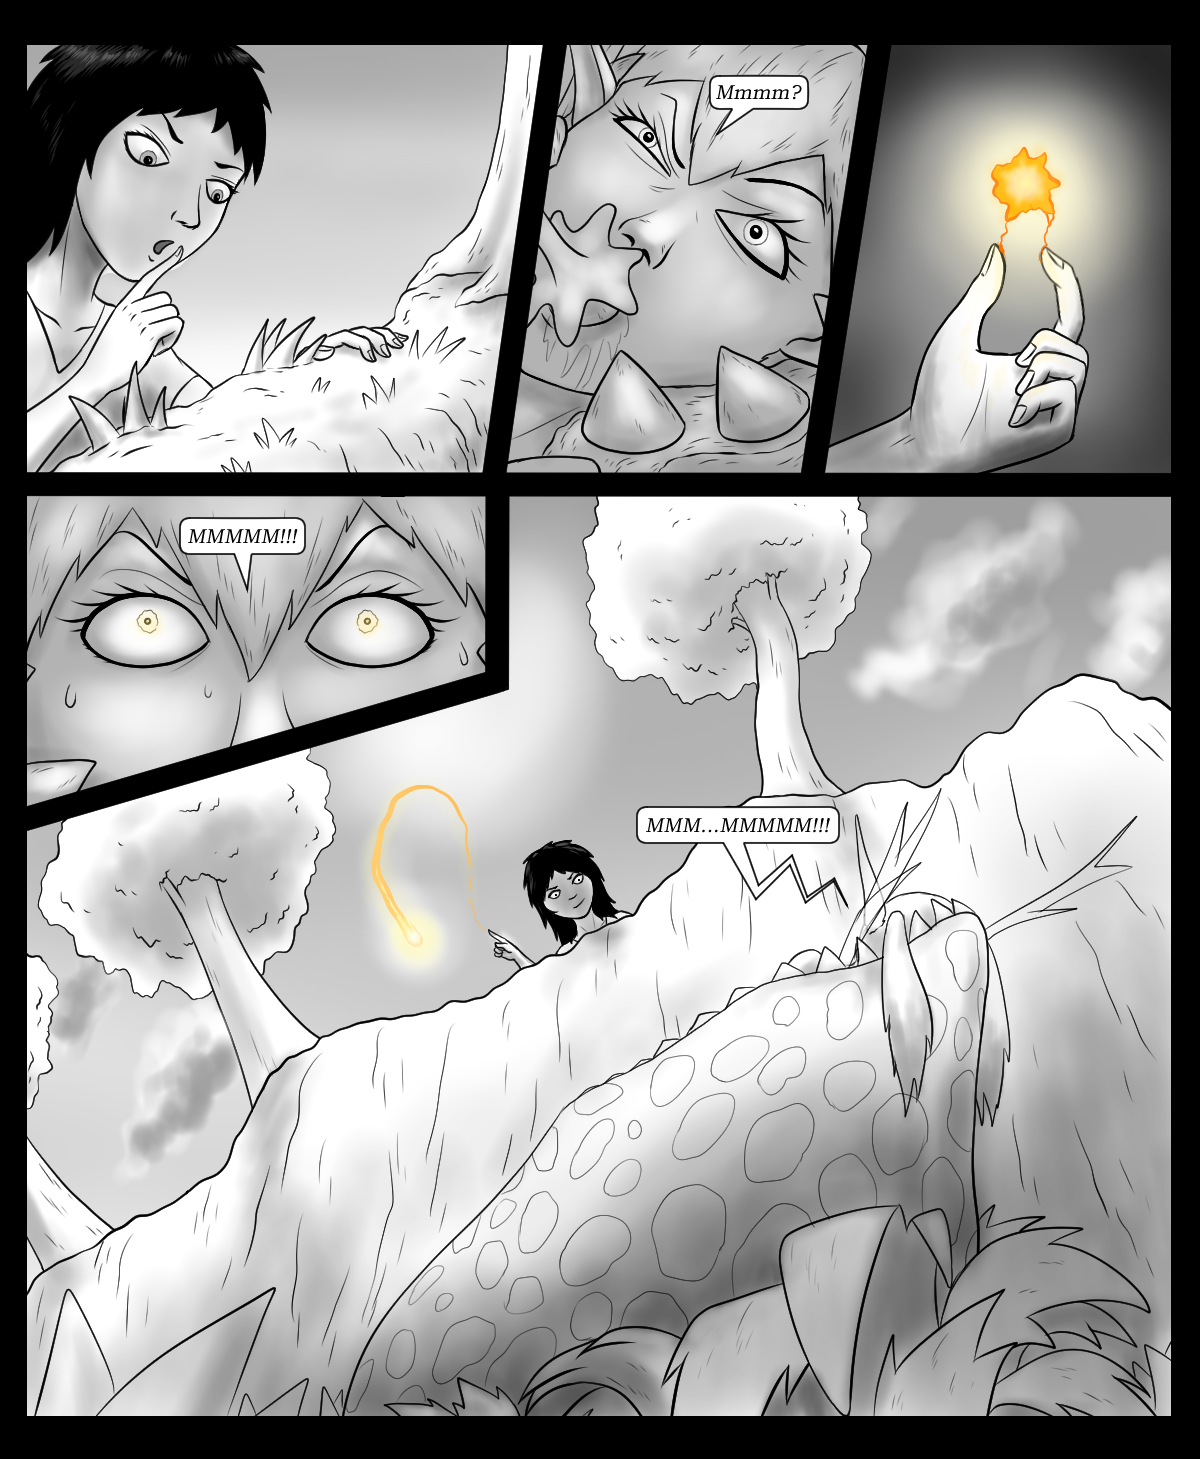 Page 21 - A spark of hope